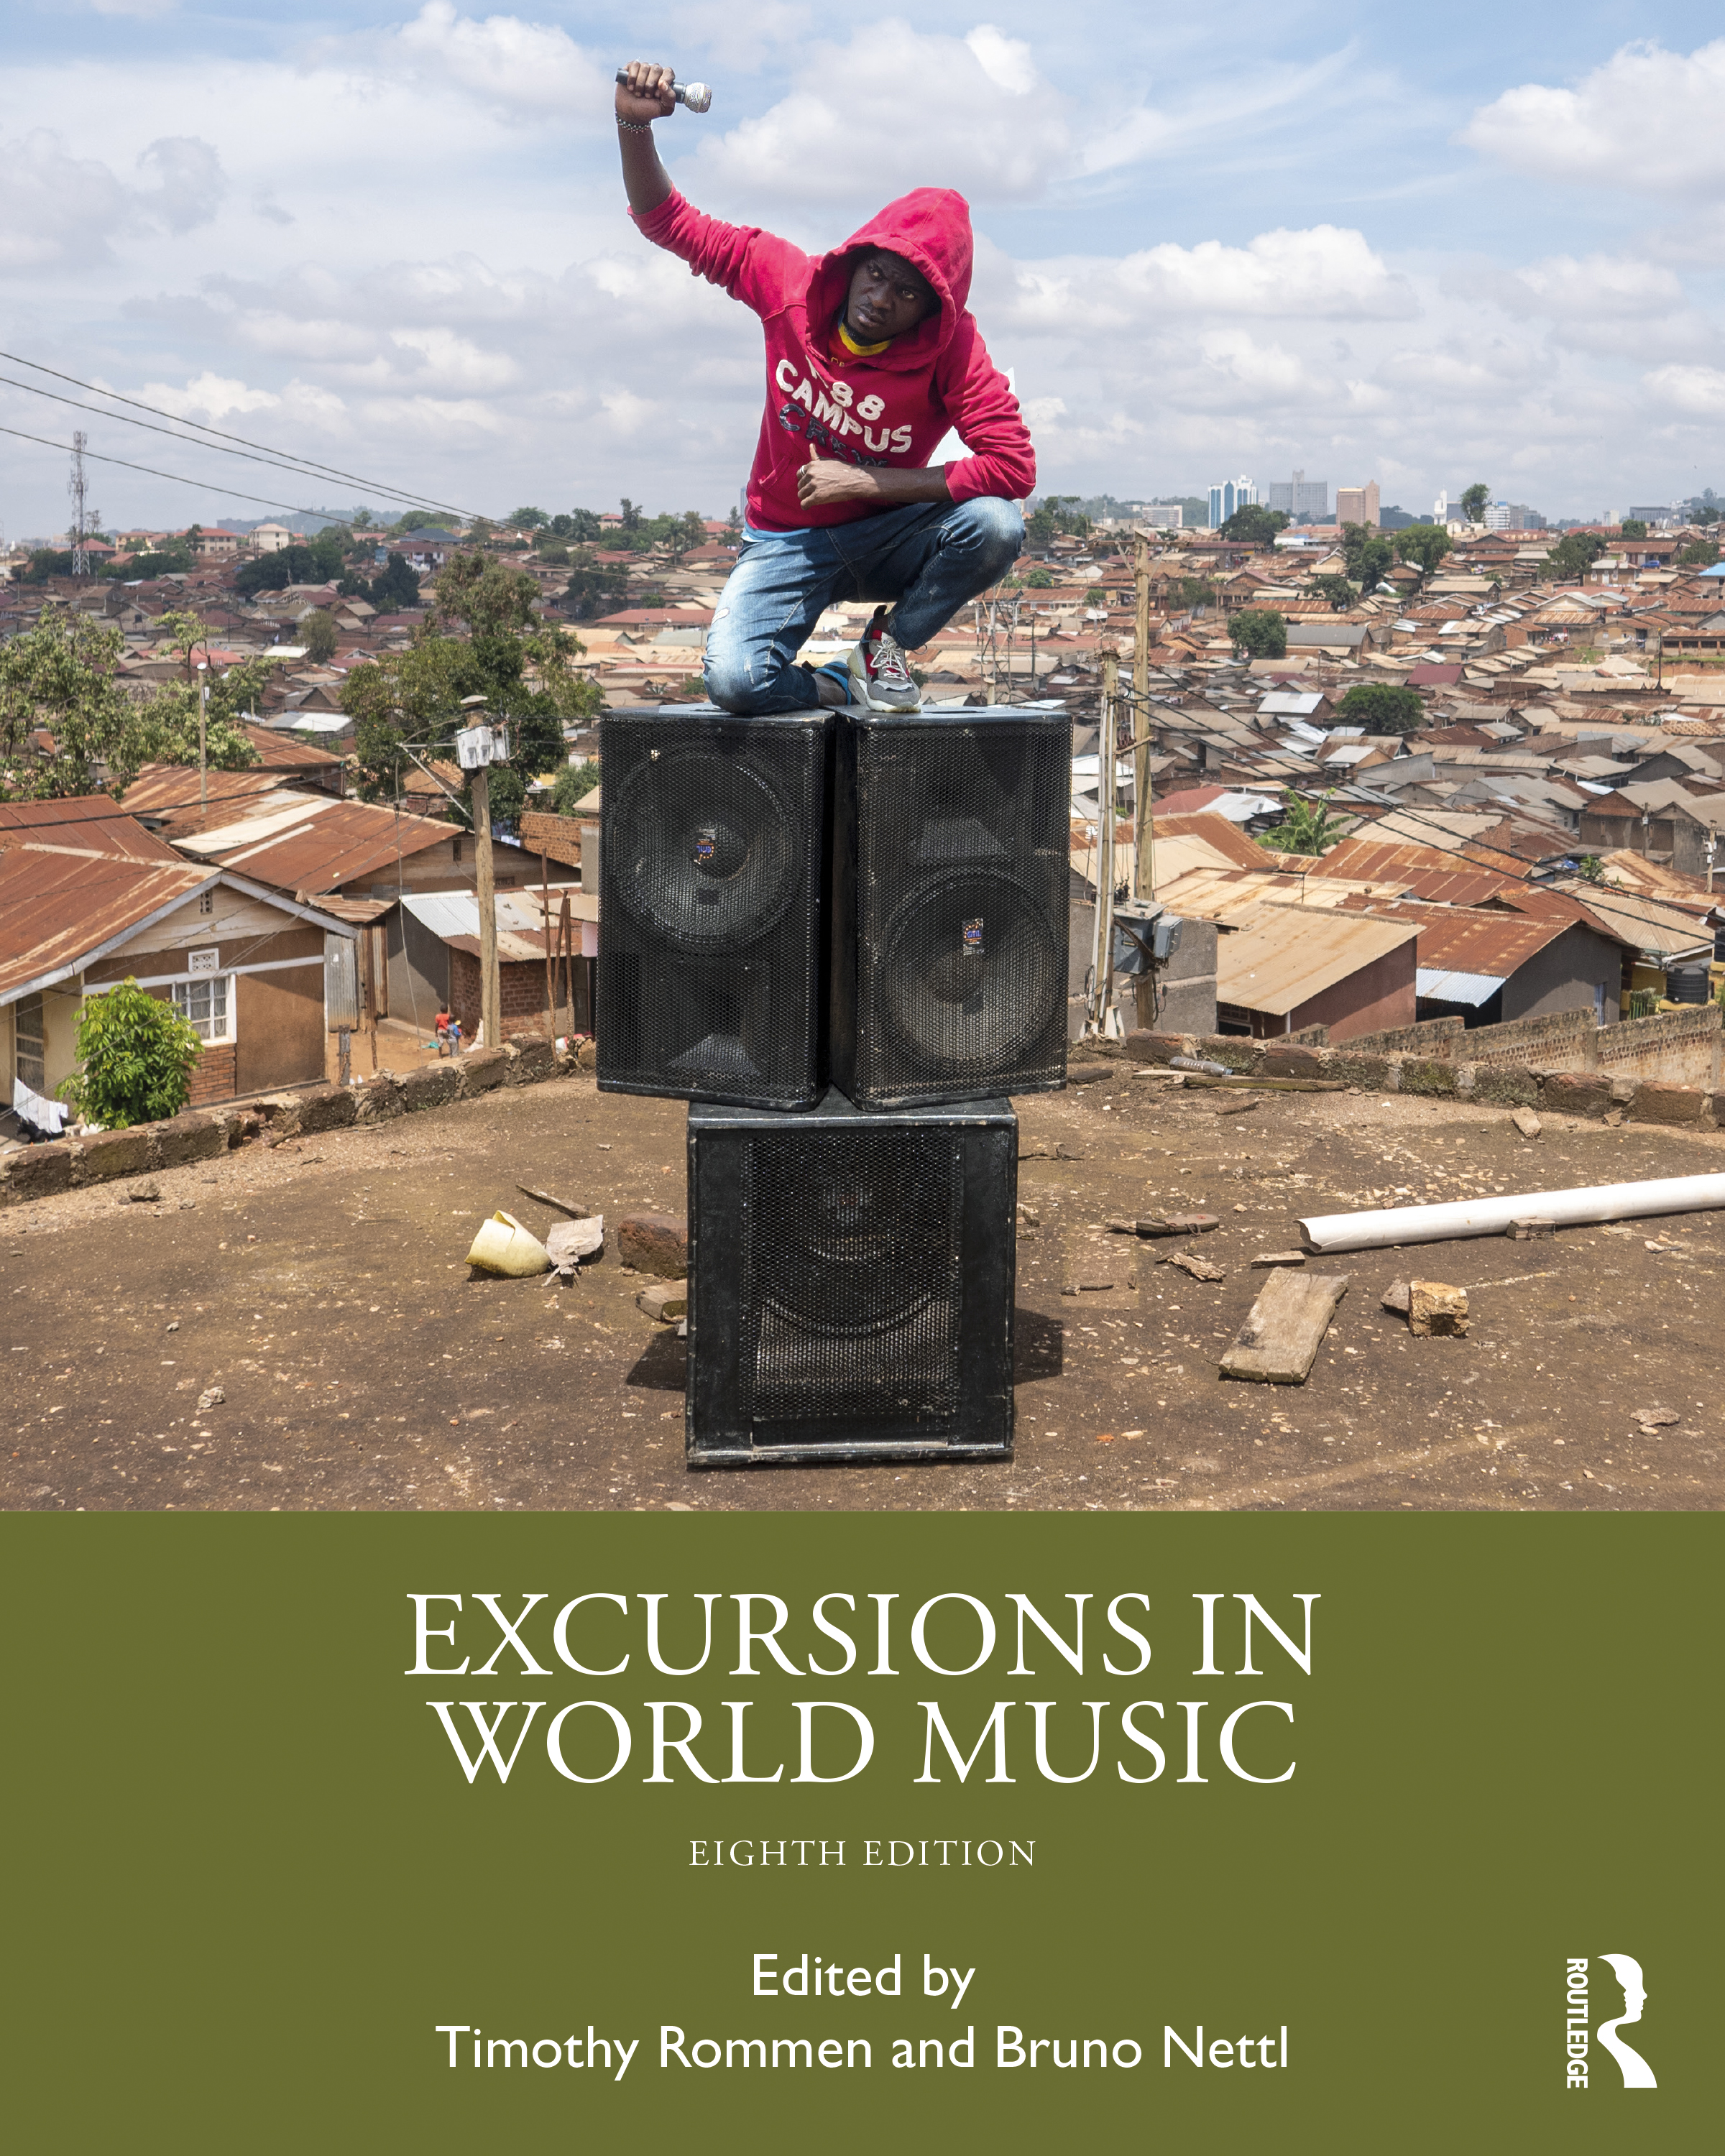 Excursions in World Music book cover